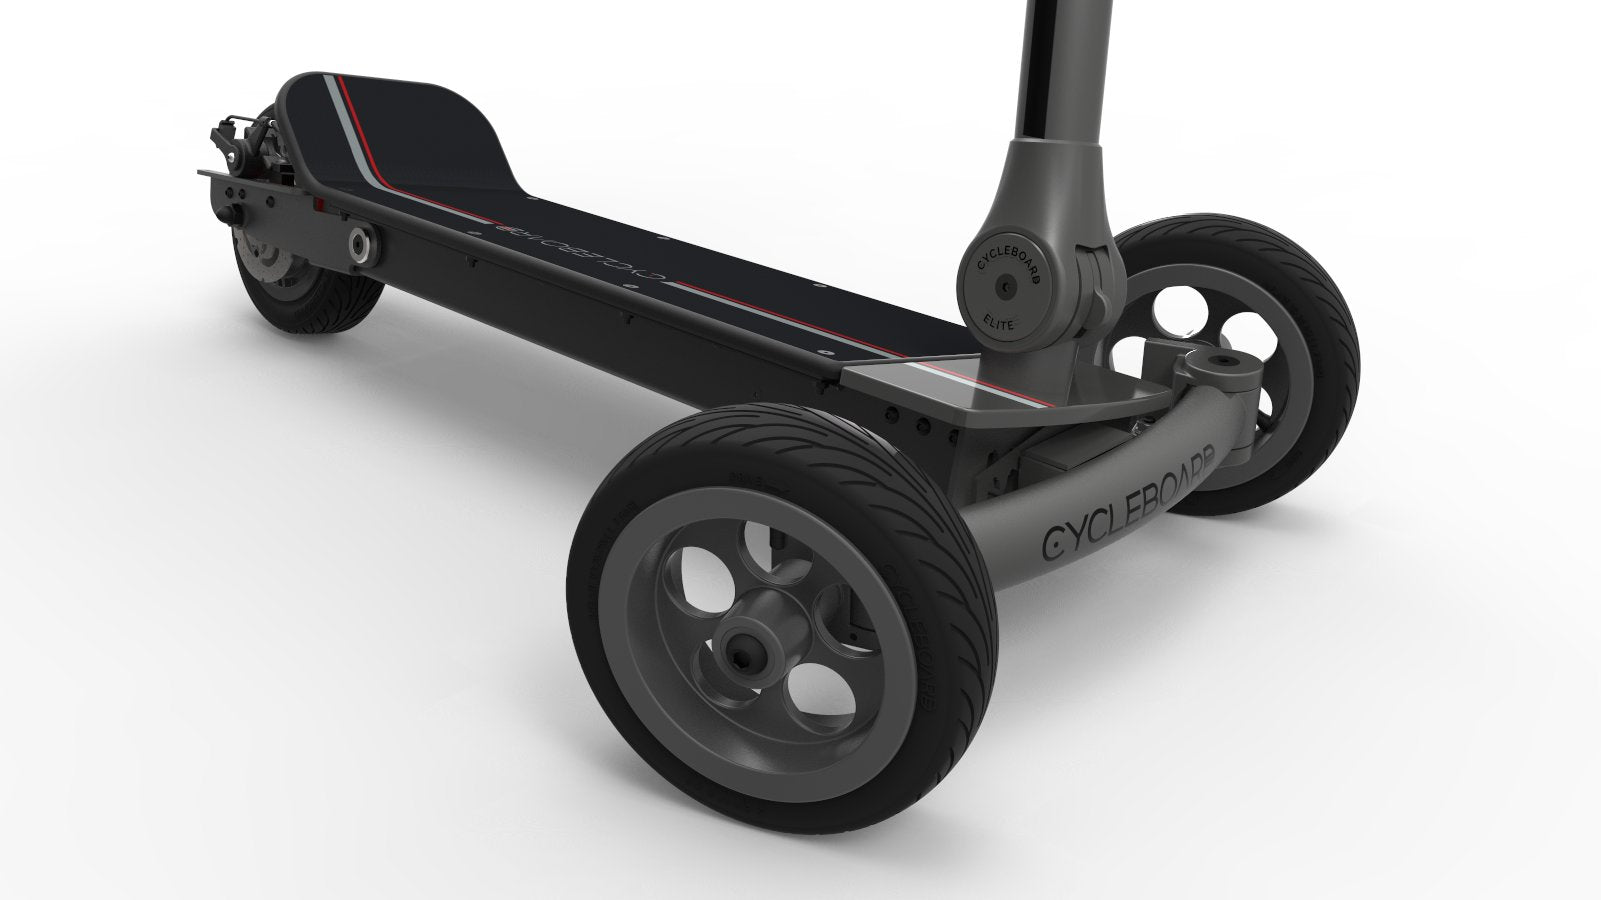 Cycleboard Made Circuit Board For Segway And Sctoor Buy Custom Superior Stability